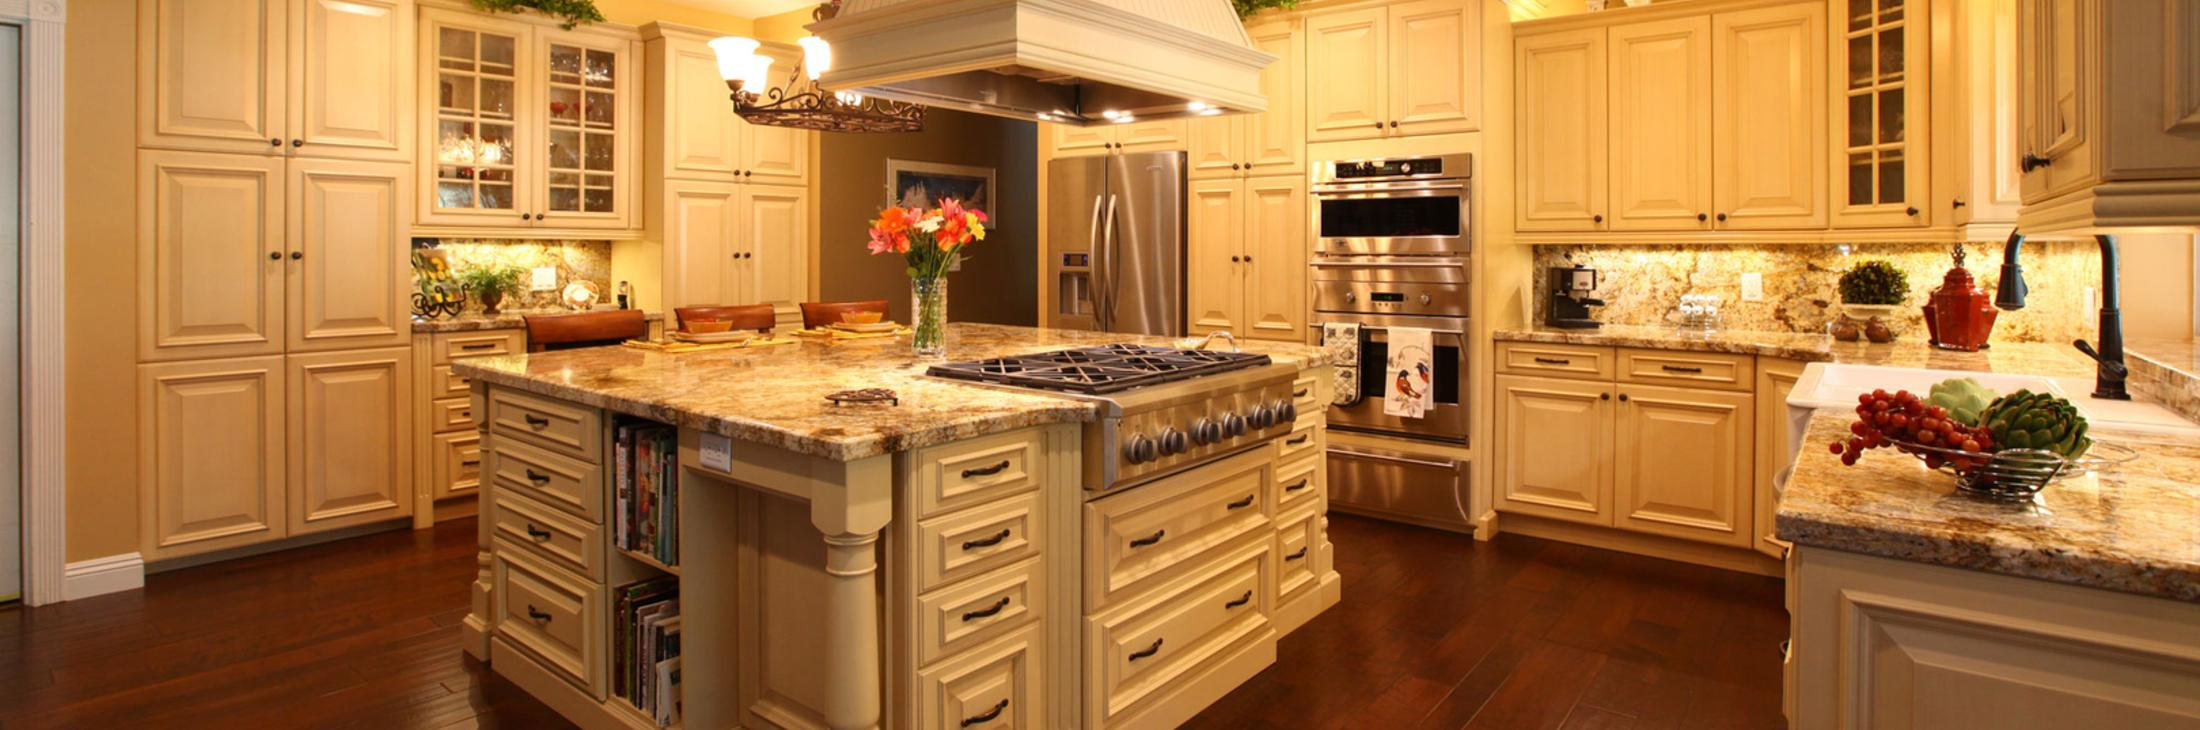 Kitchen And Bath Stockdale Kitchen And Bath In Bakersfield Ca